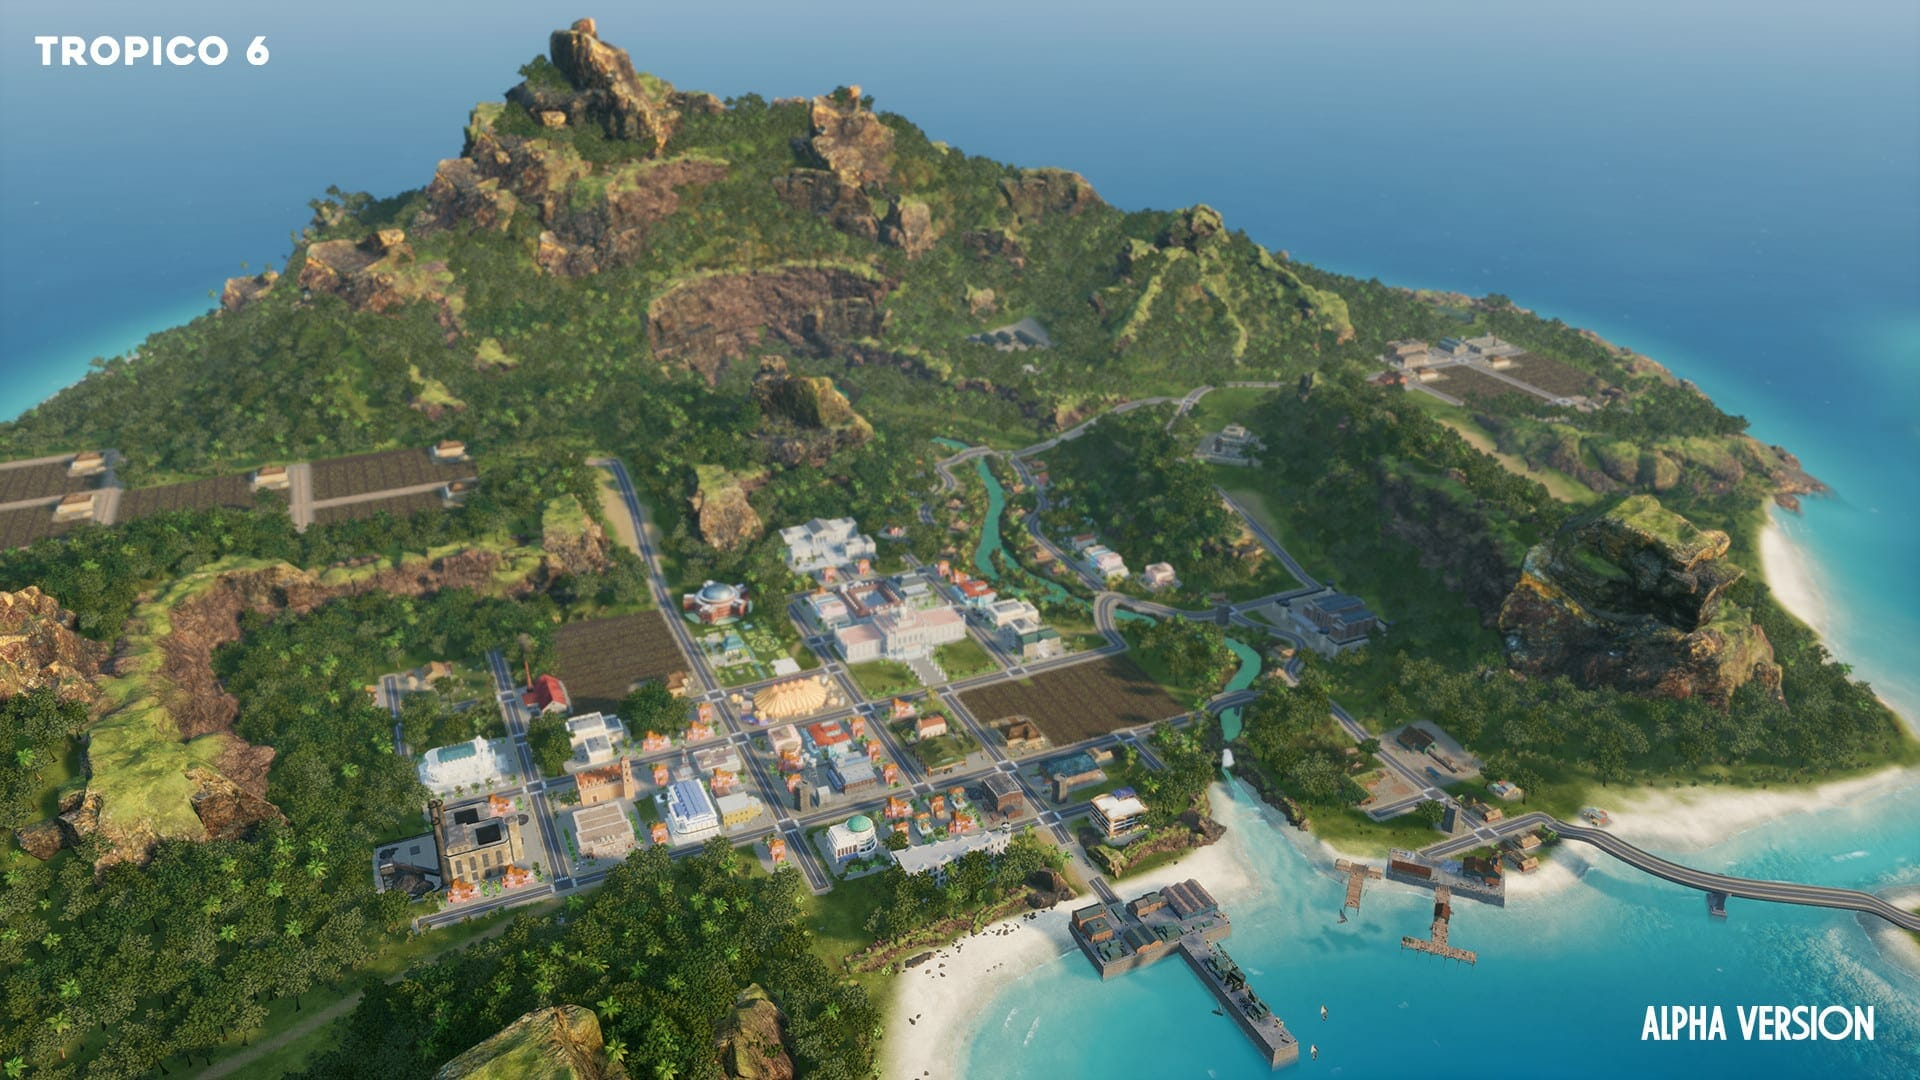 Tropico 6 Game Map